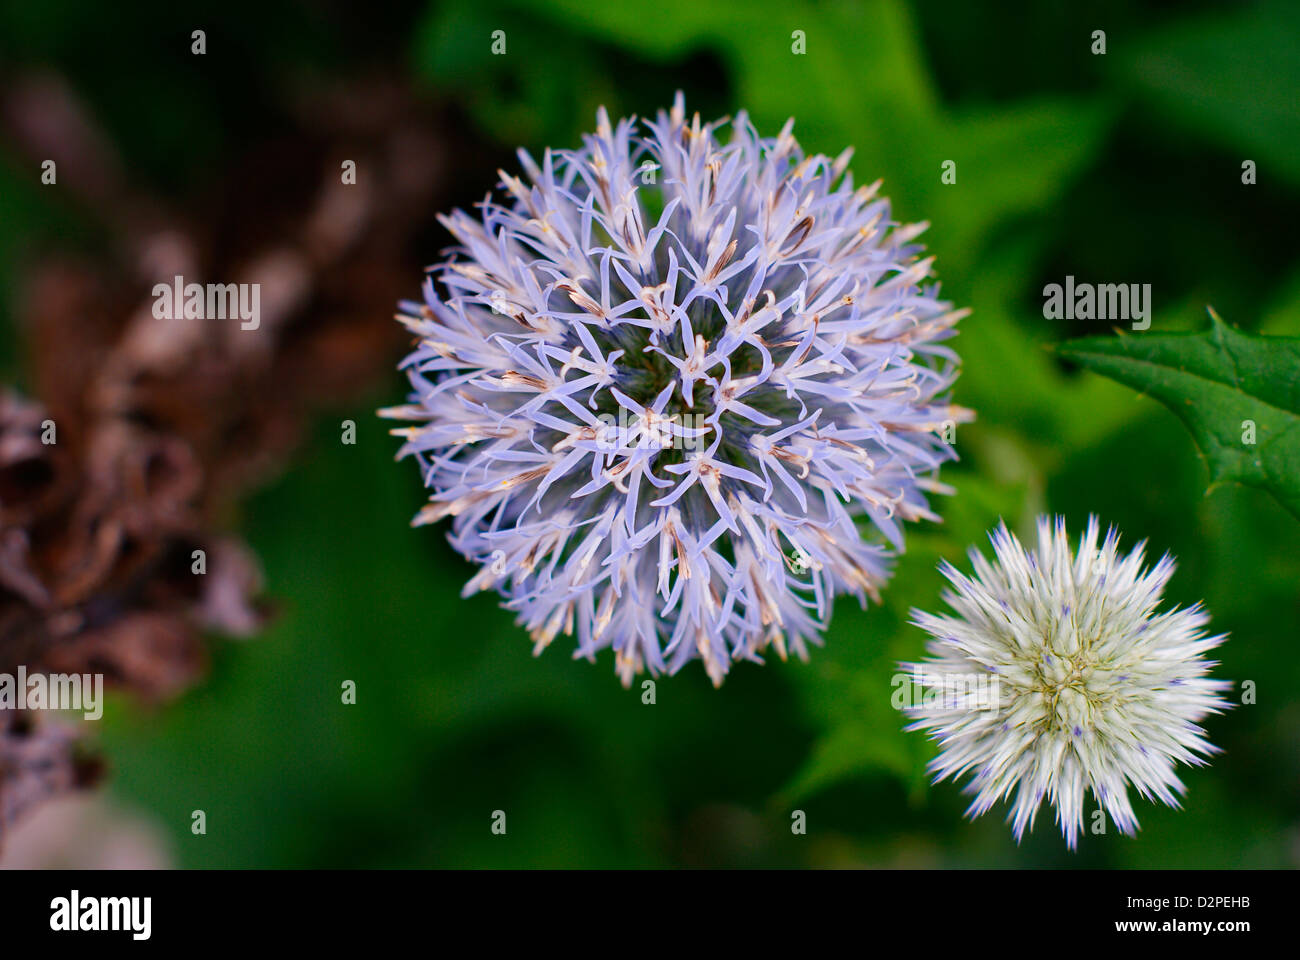 Flowering and Young Blue Globe Thistles - Echinops ritro - Stock Image